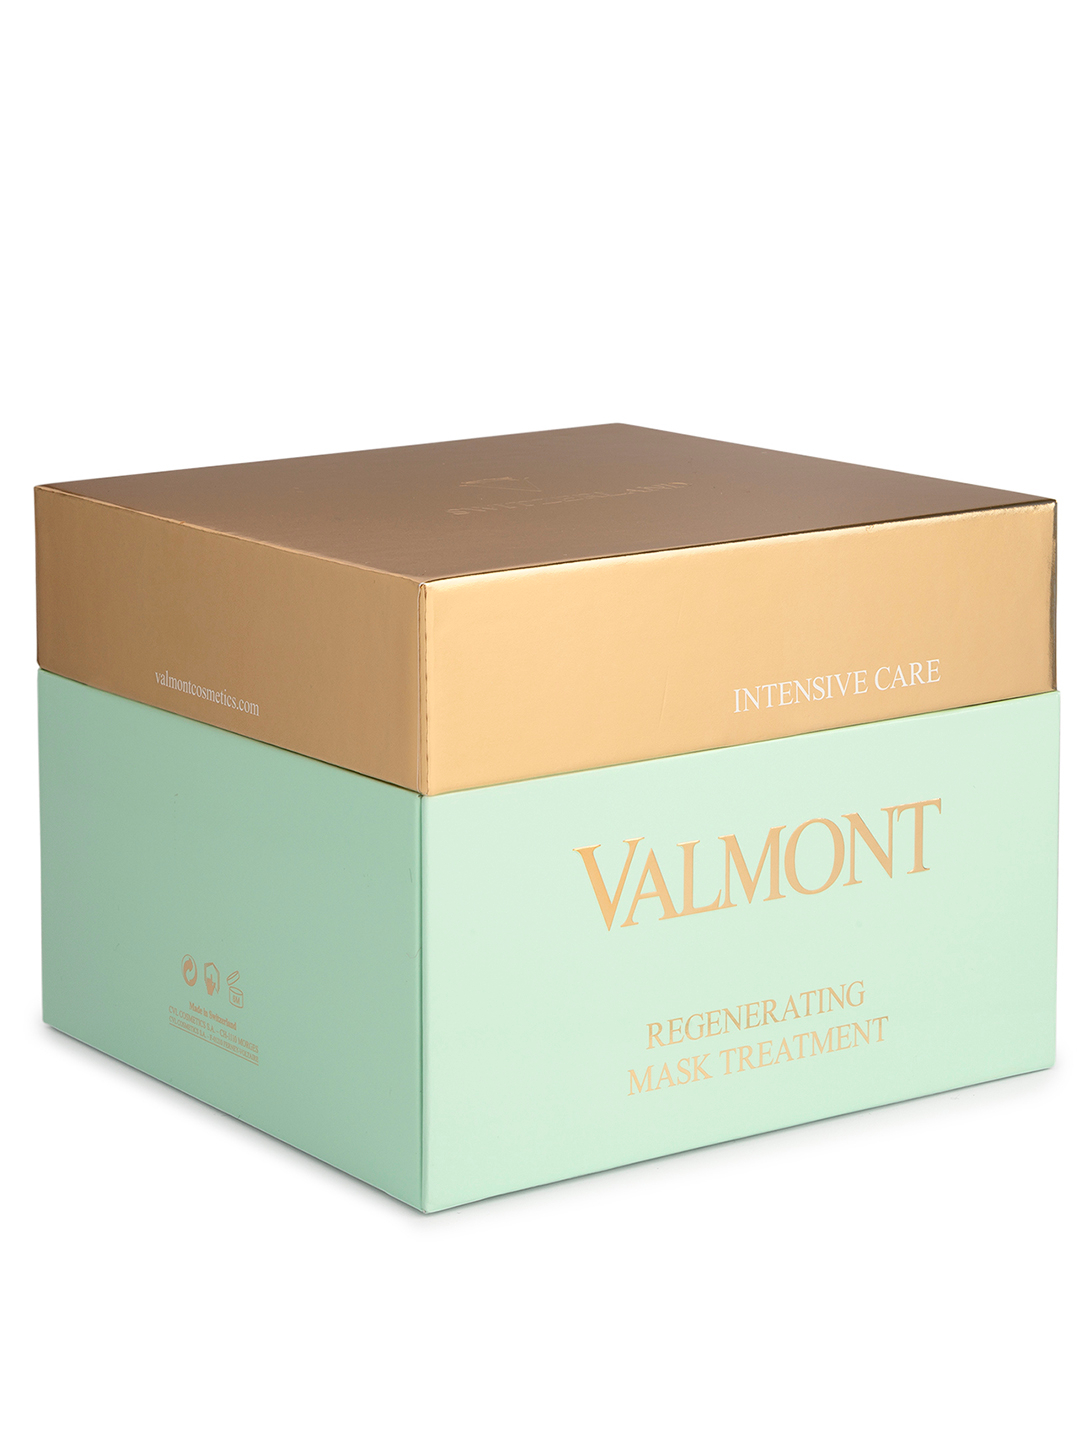 VALMONT Face Regenerating Mask Treatment Beauty